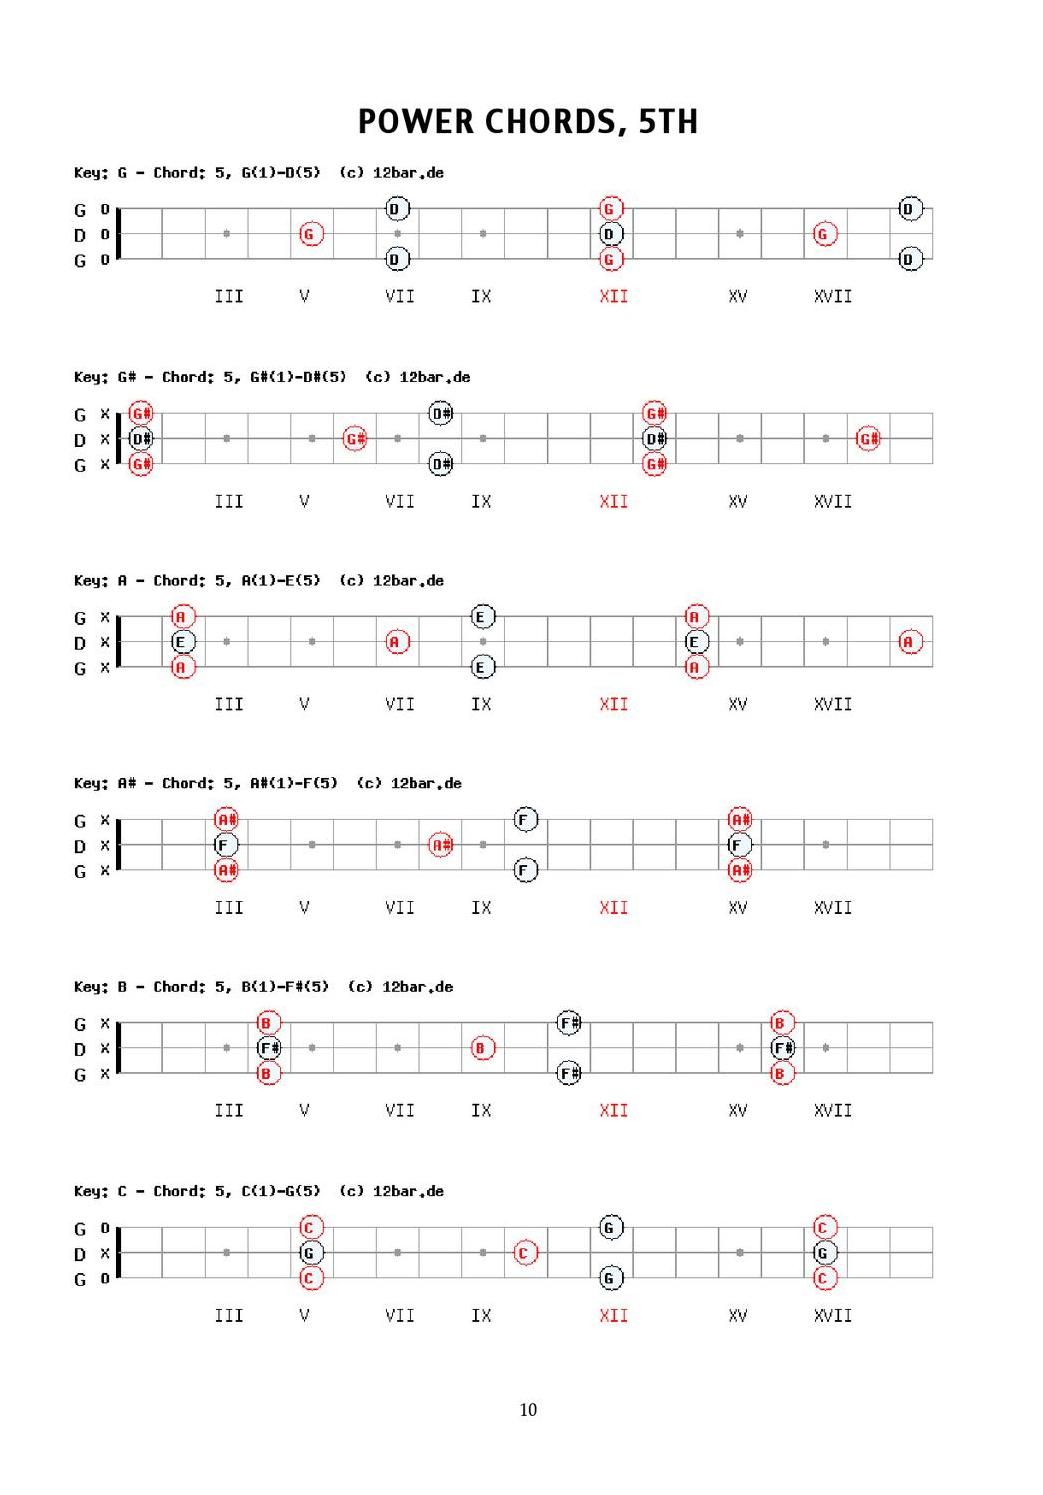 G chord forms for 3 string gdg cigar box guitar cbgitty clippedonissuu from gdg 3 string cigar box guitar scales and chords hexwebz Images